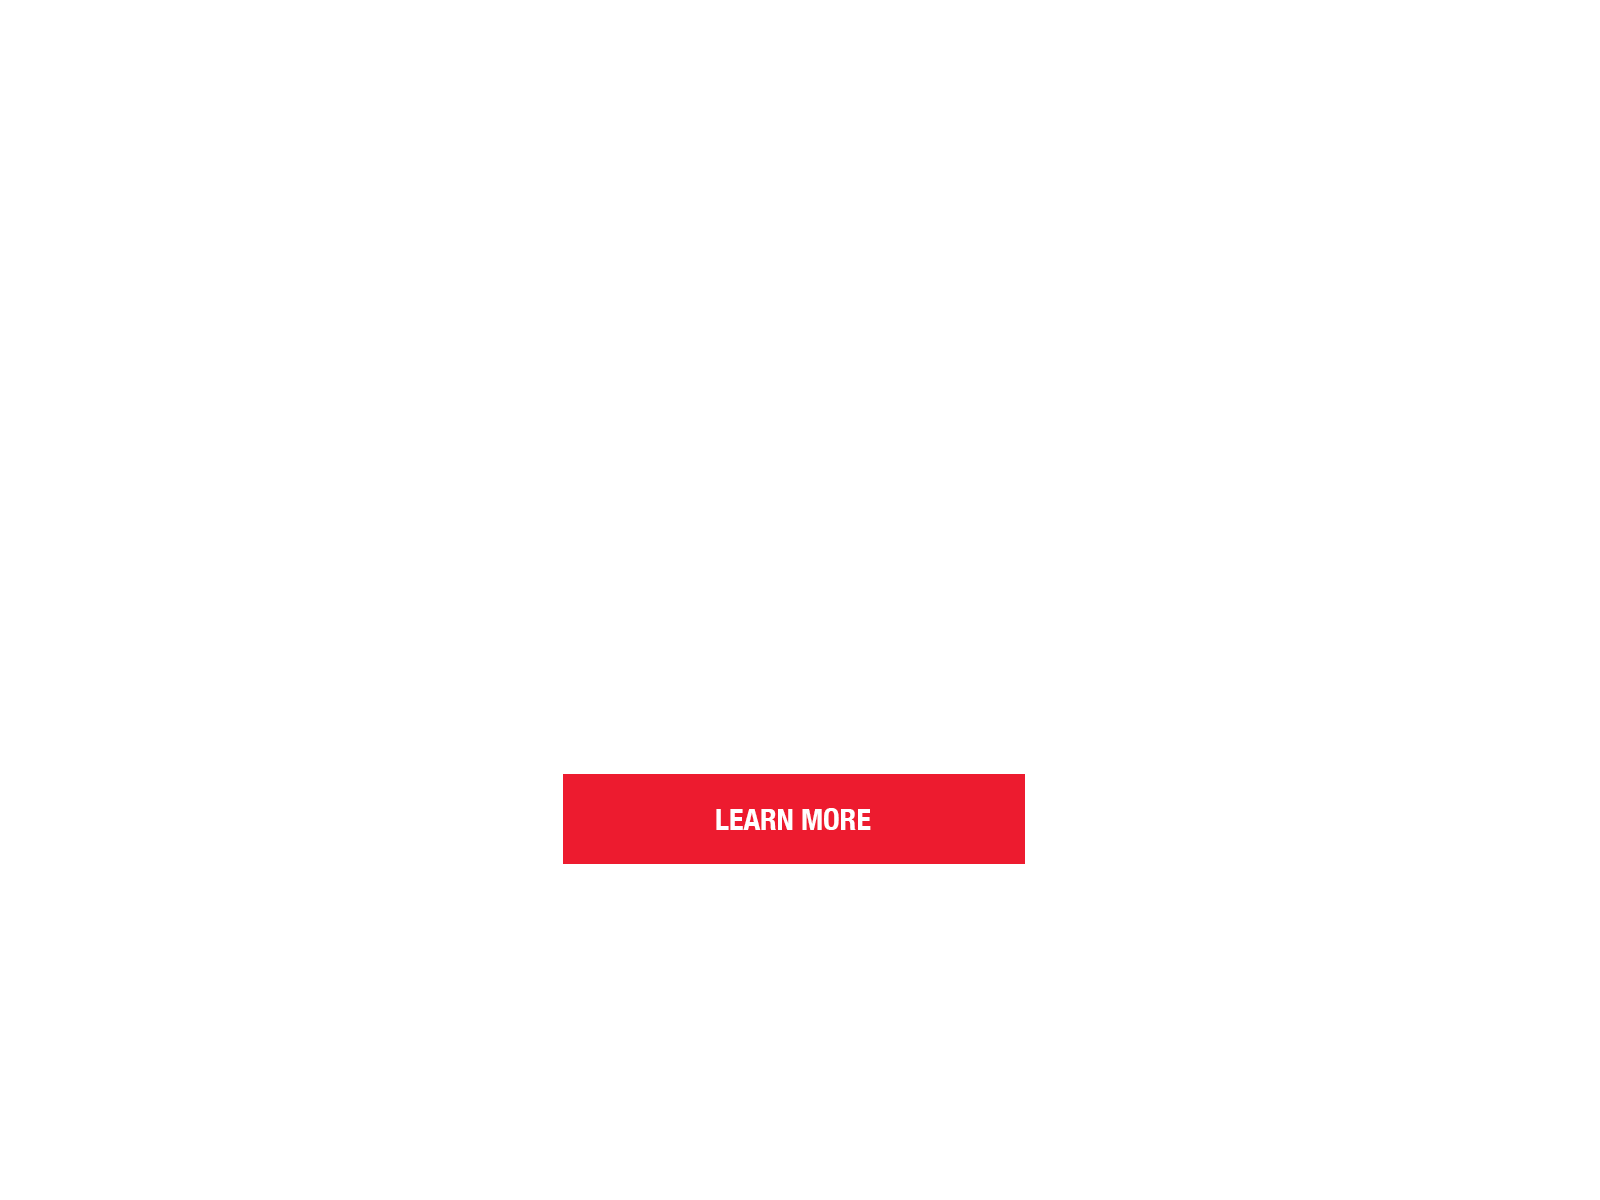 Introducing the Travel Trainr, a 4-in-1 workout tool